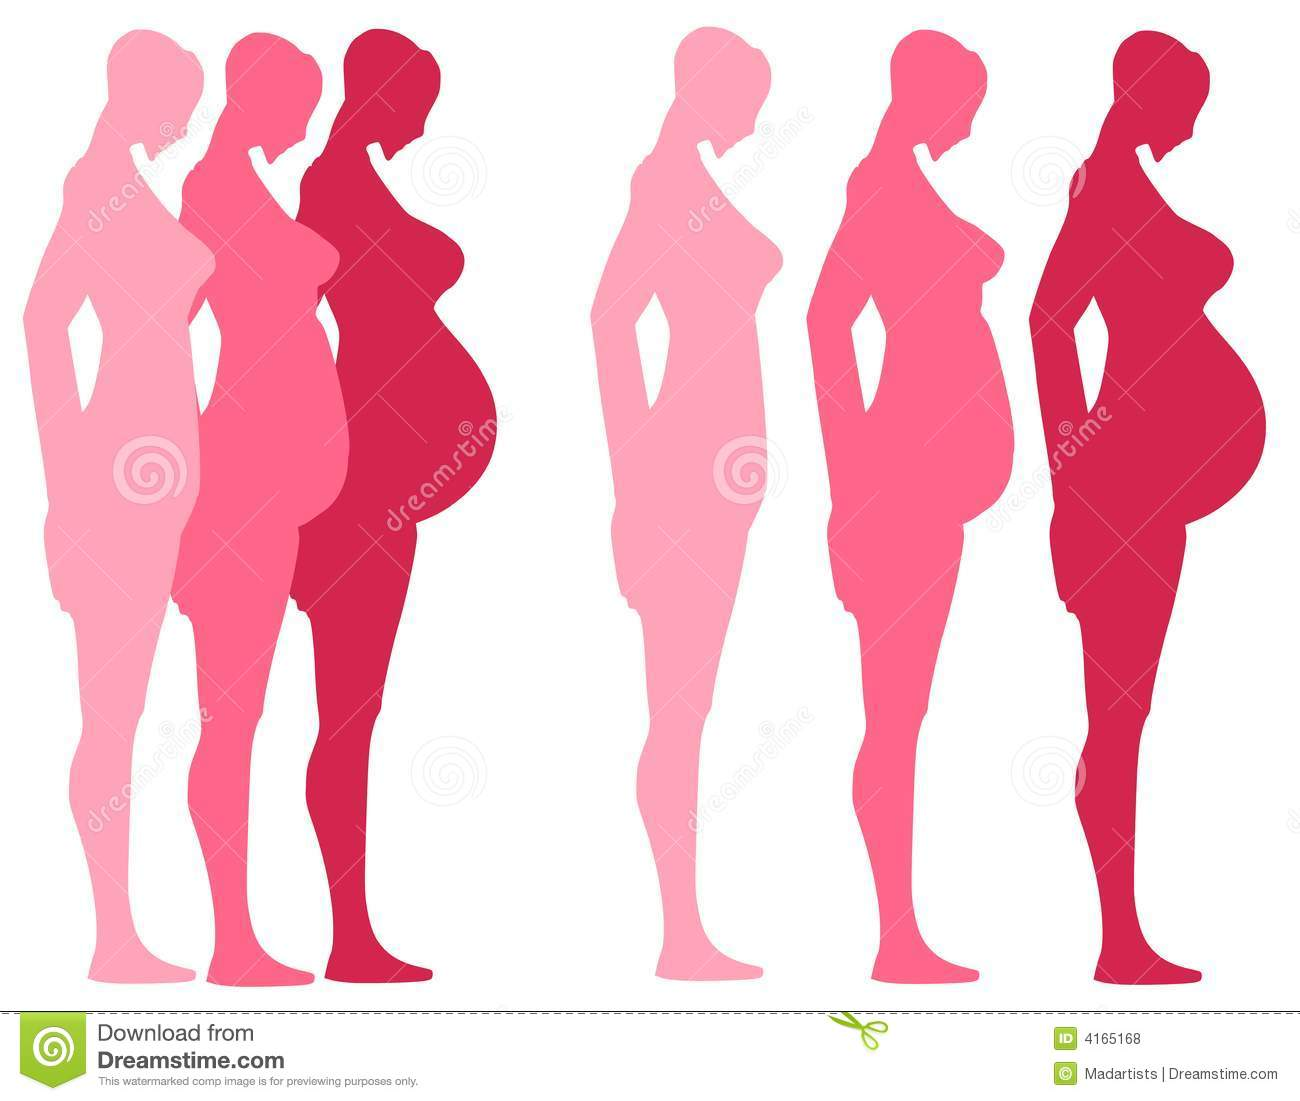 3 Trimesters Of Pregnancy Royalty Free Stock Photos.